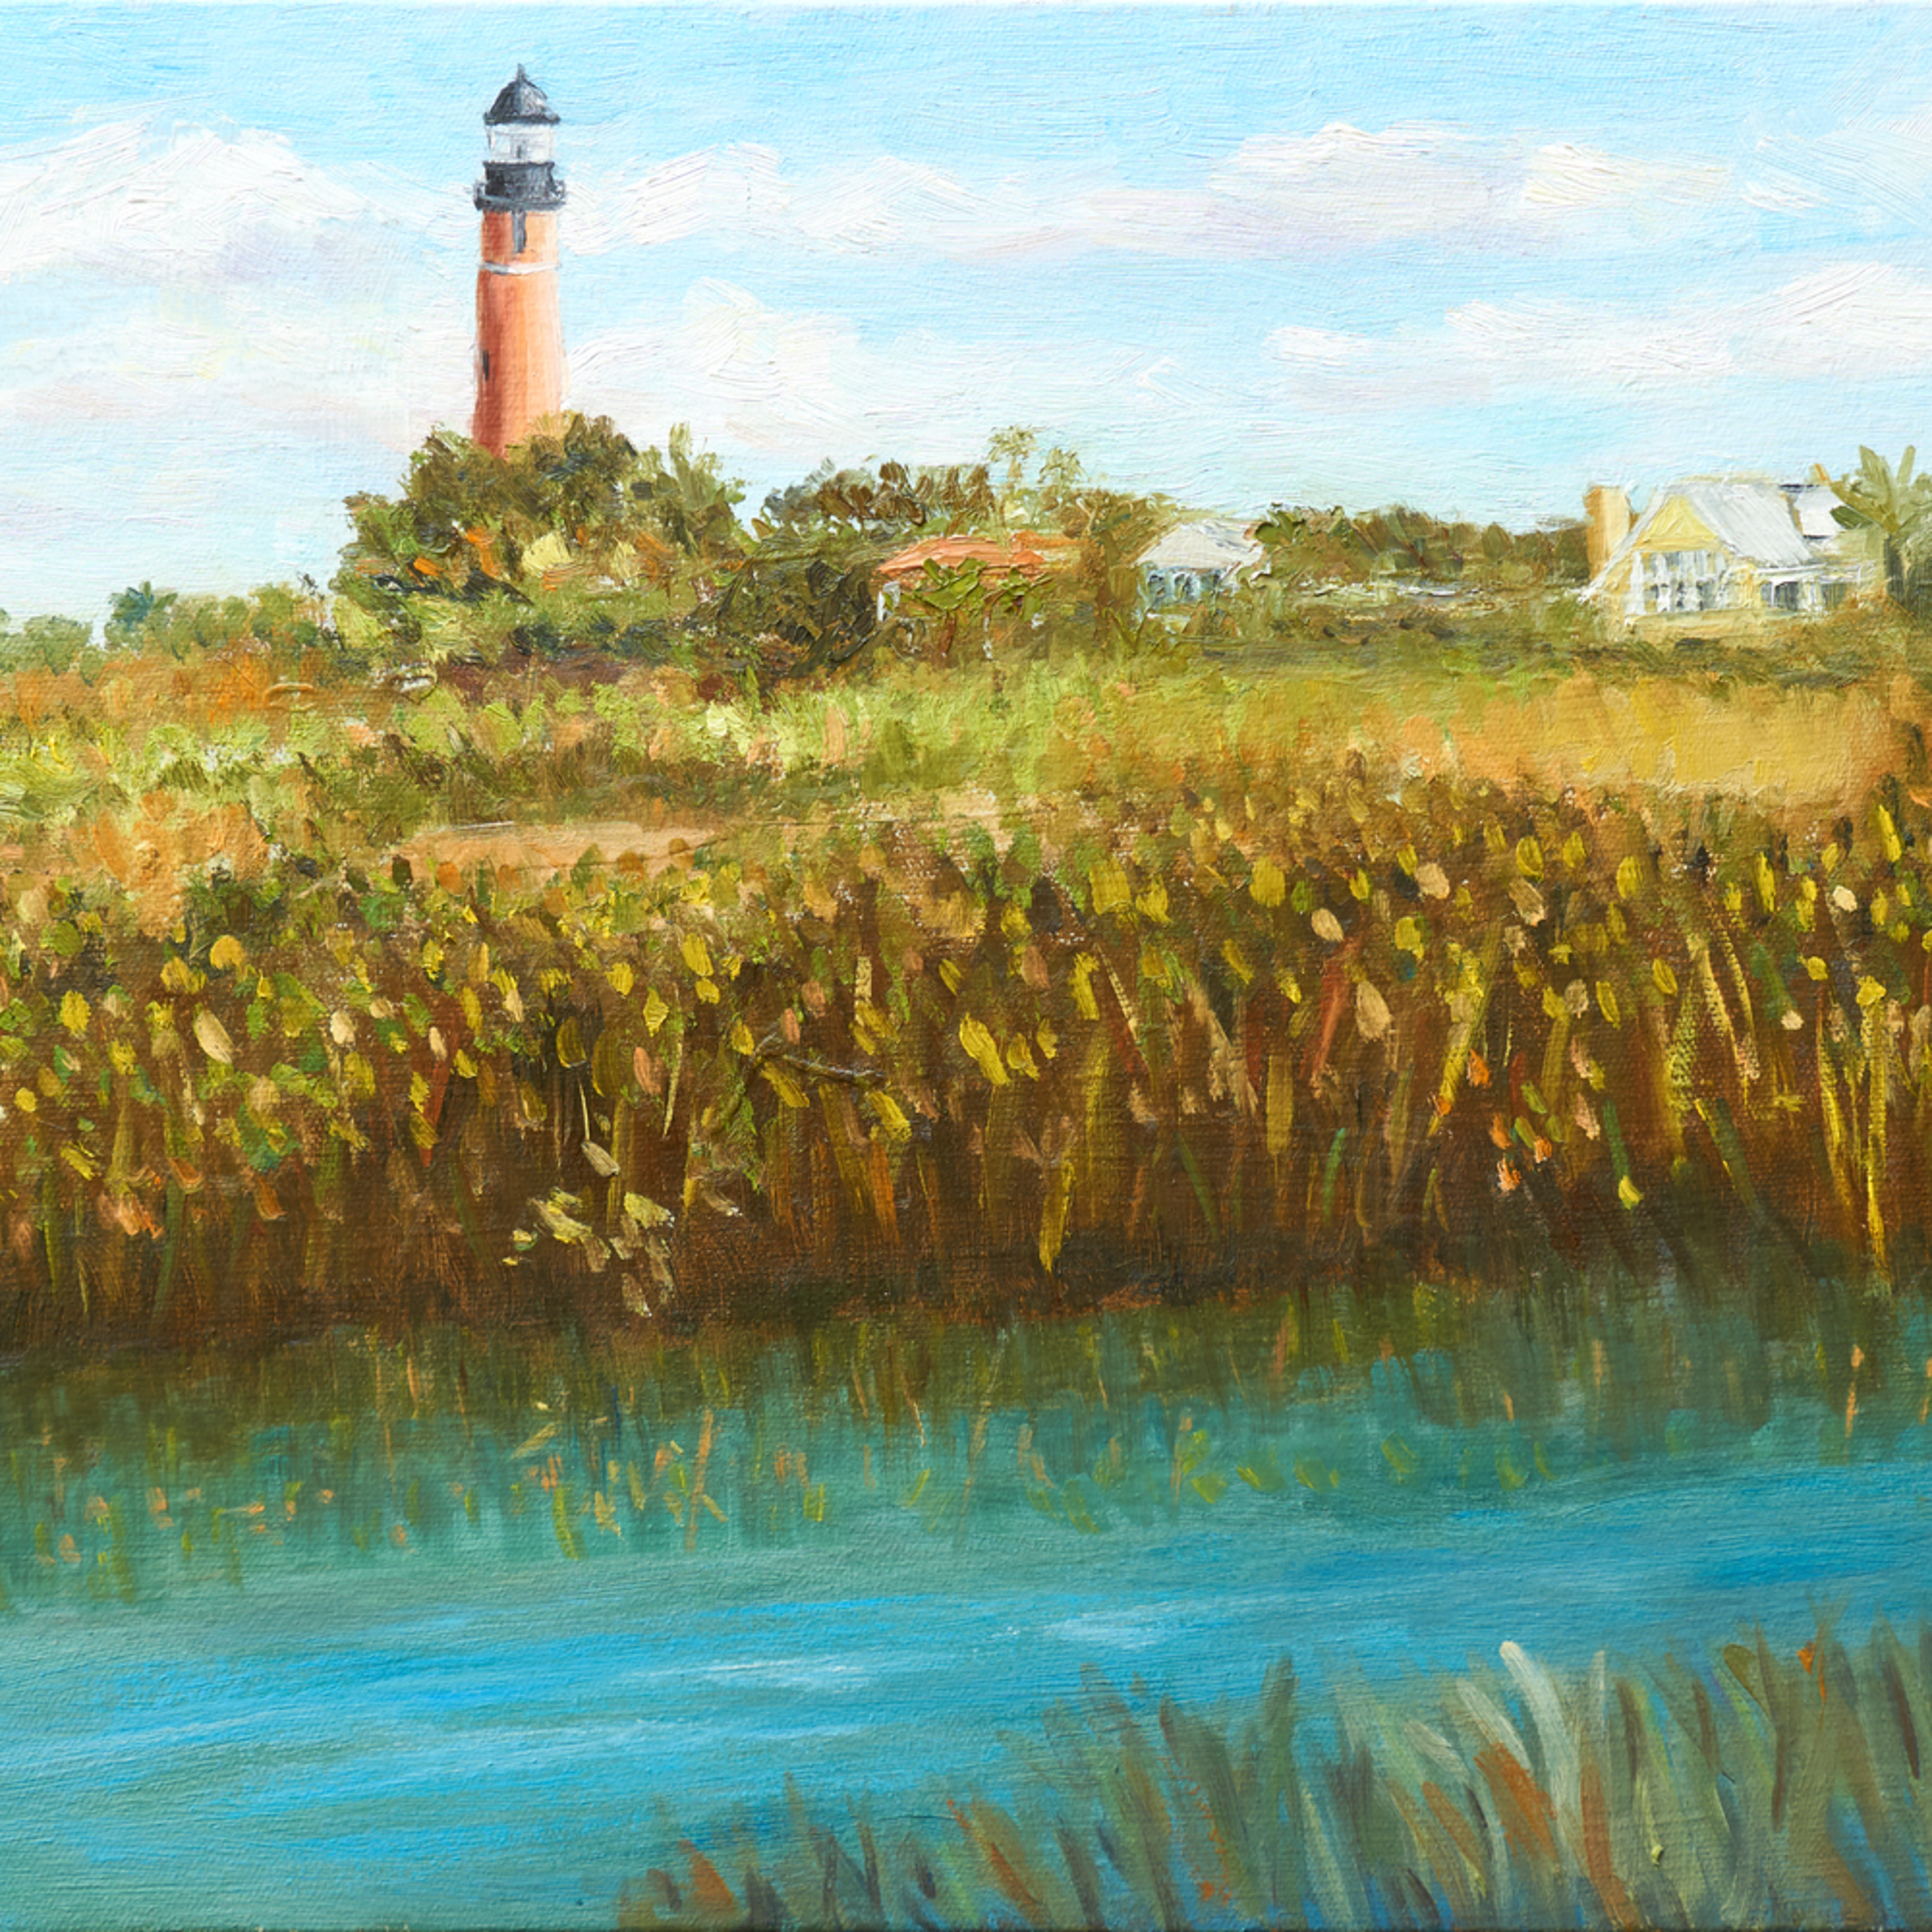 Ponce inlet lighthouse b9t1gv